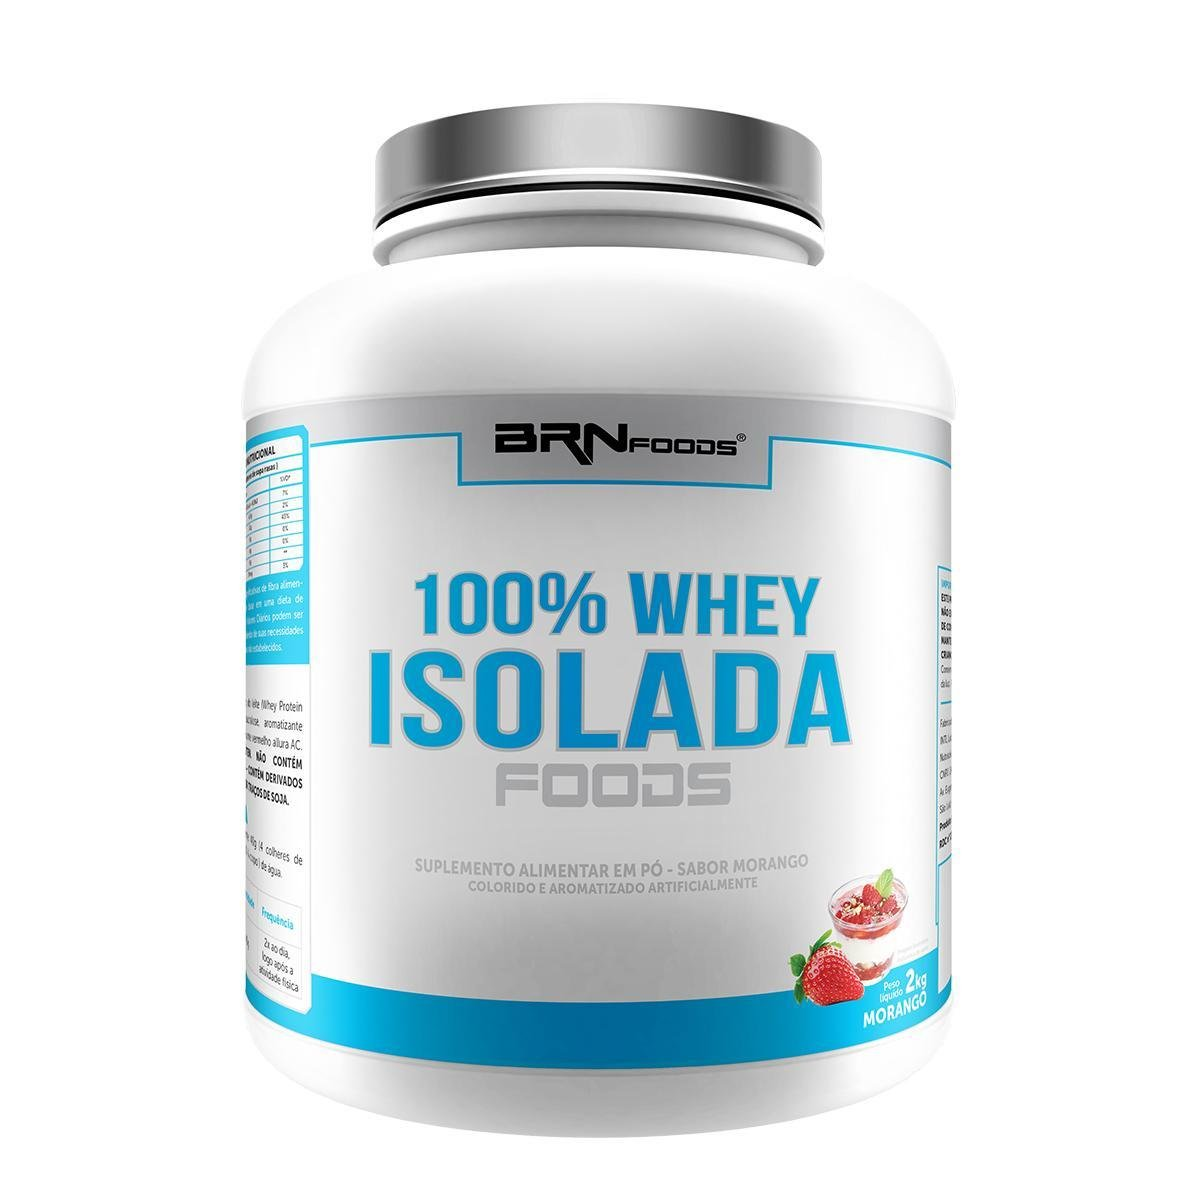 aa6d3b2d61d Whey Protein BR NUTRITION FOODS - Suplementos